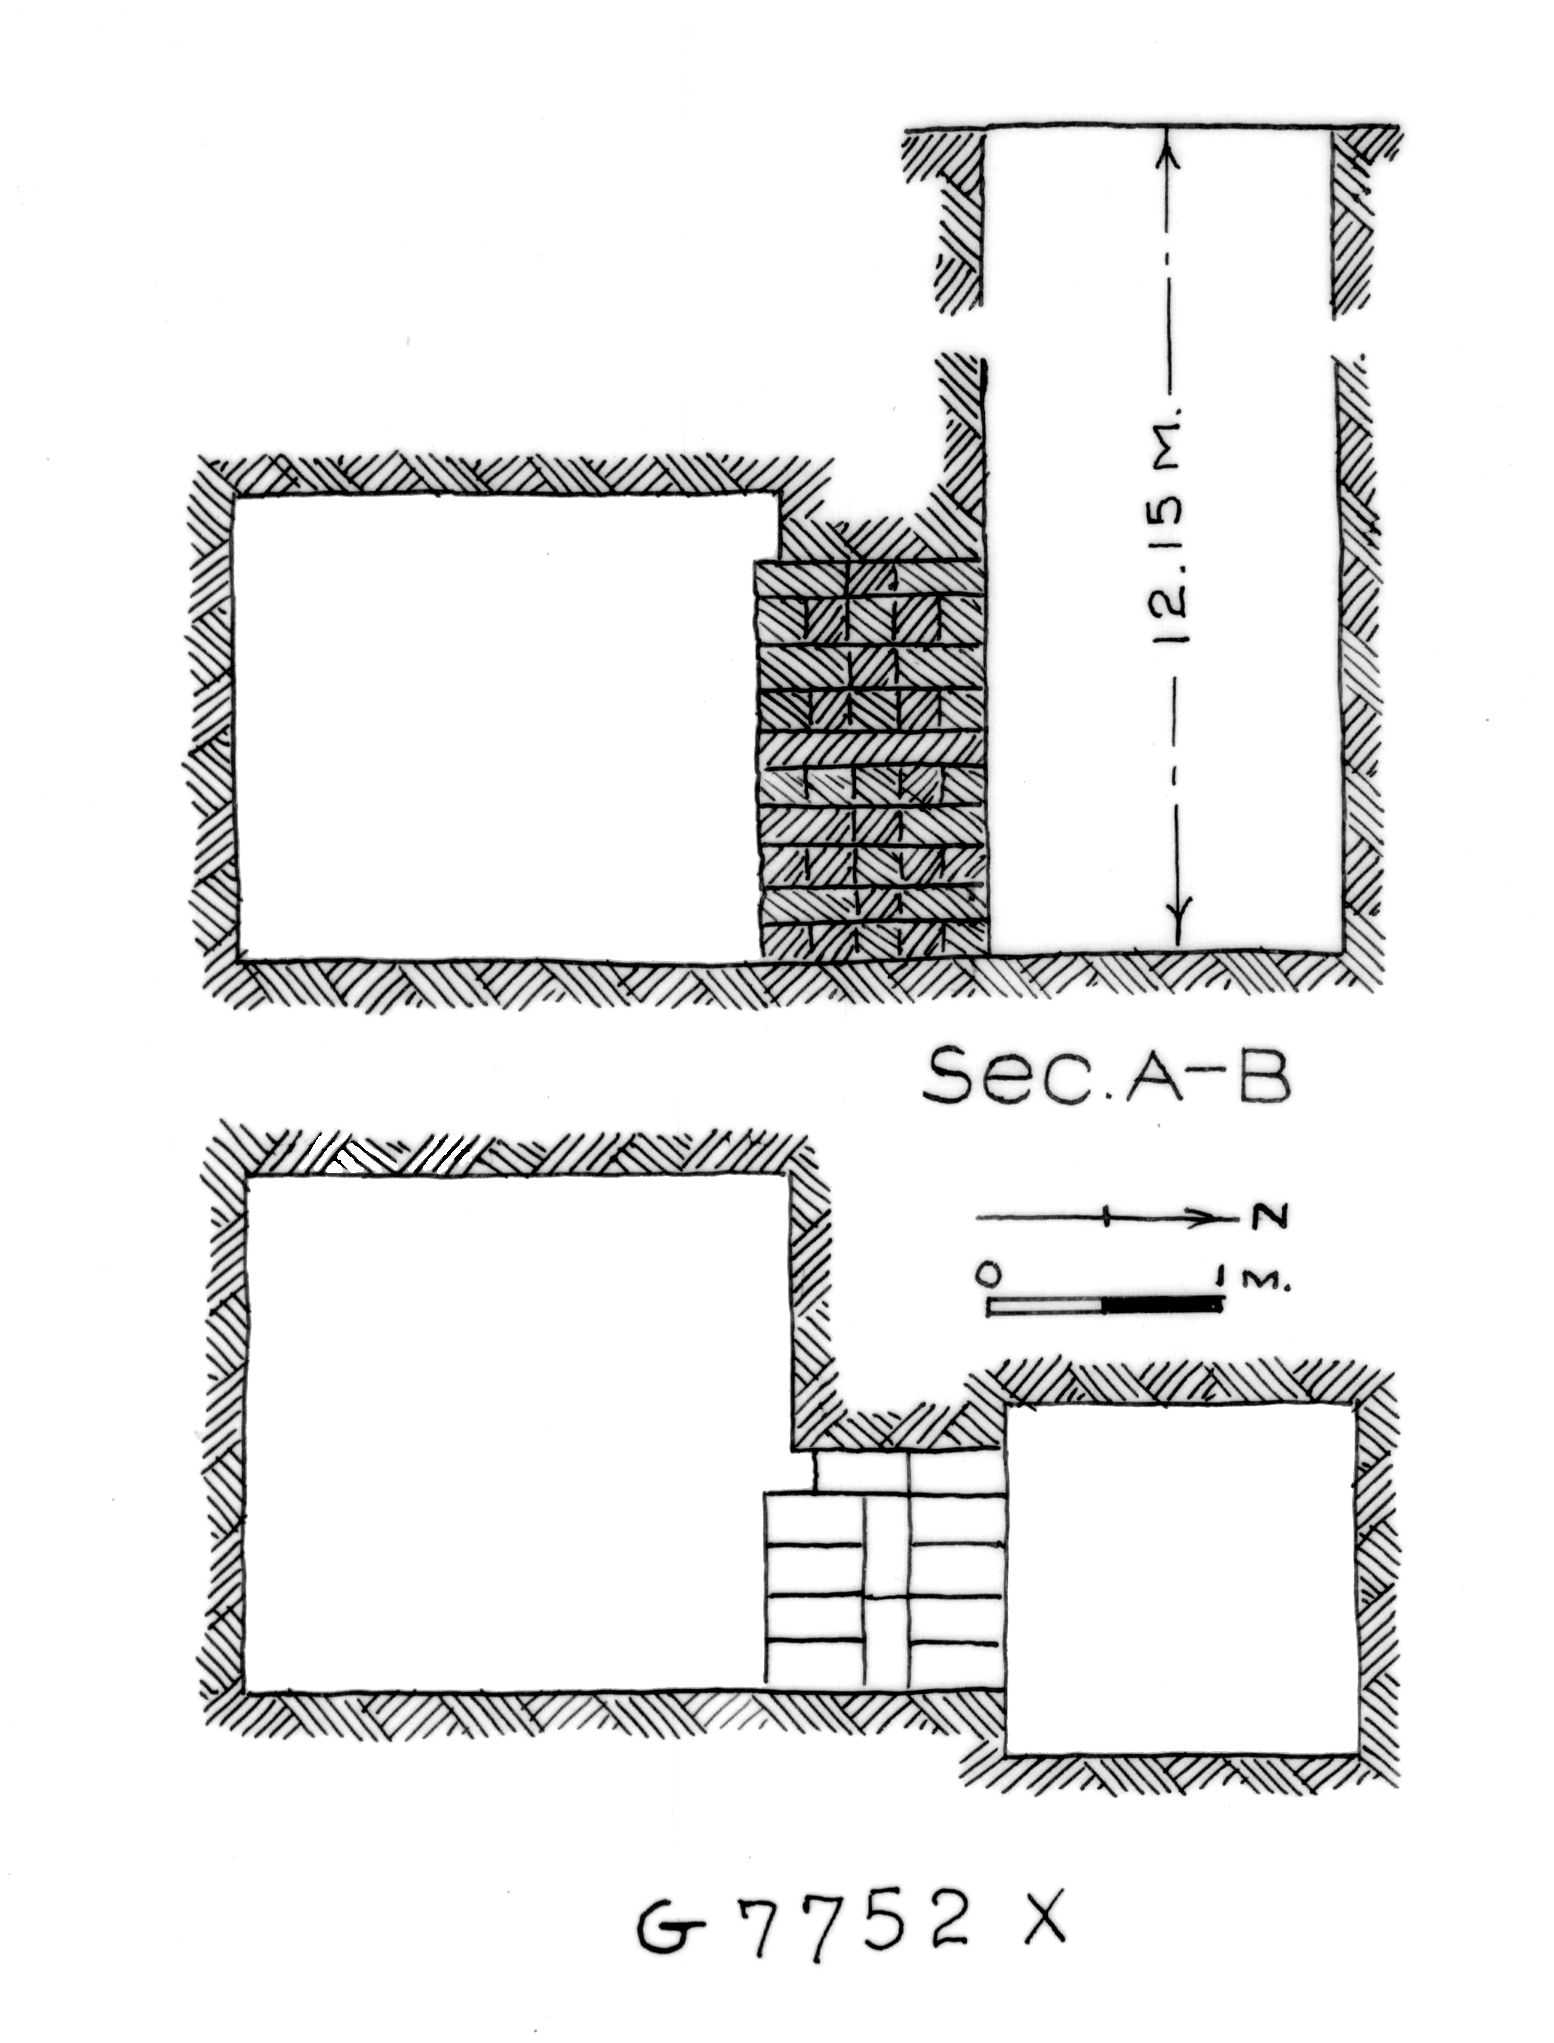 Maps and plans: G 7752, Shaft X